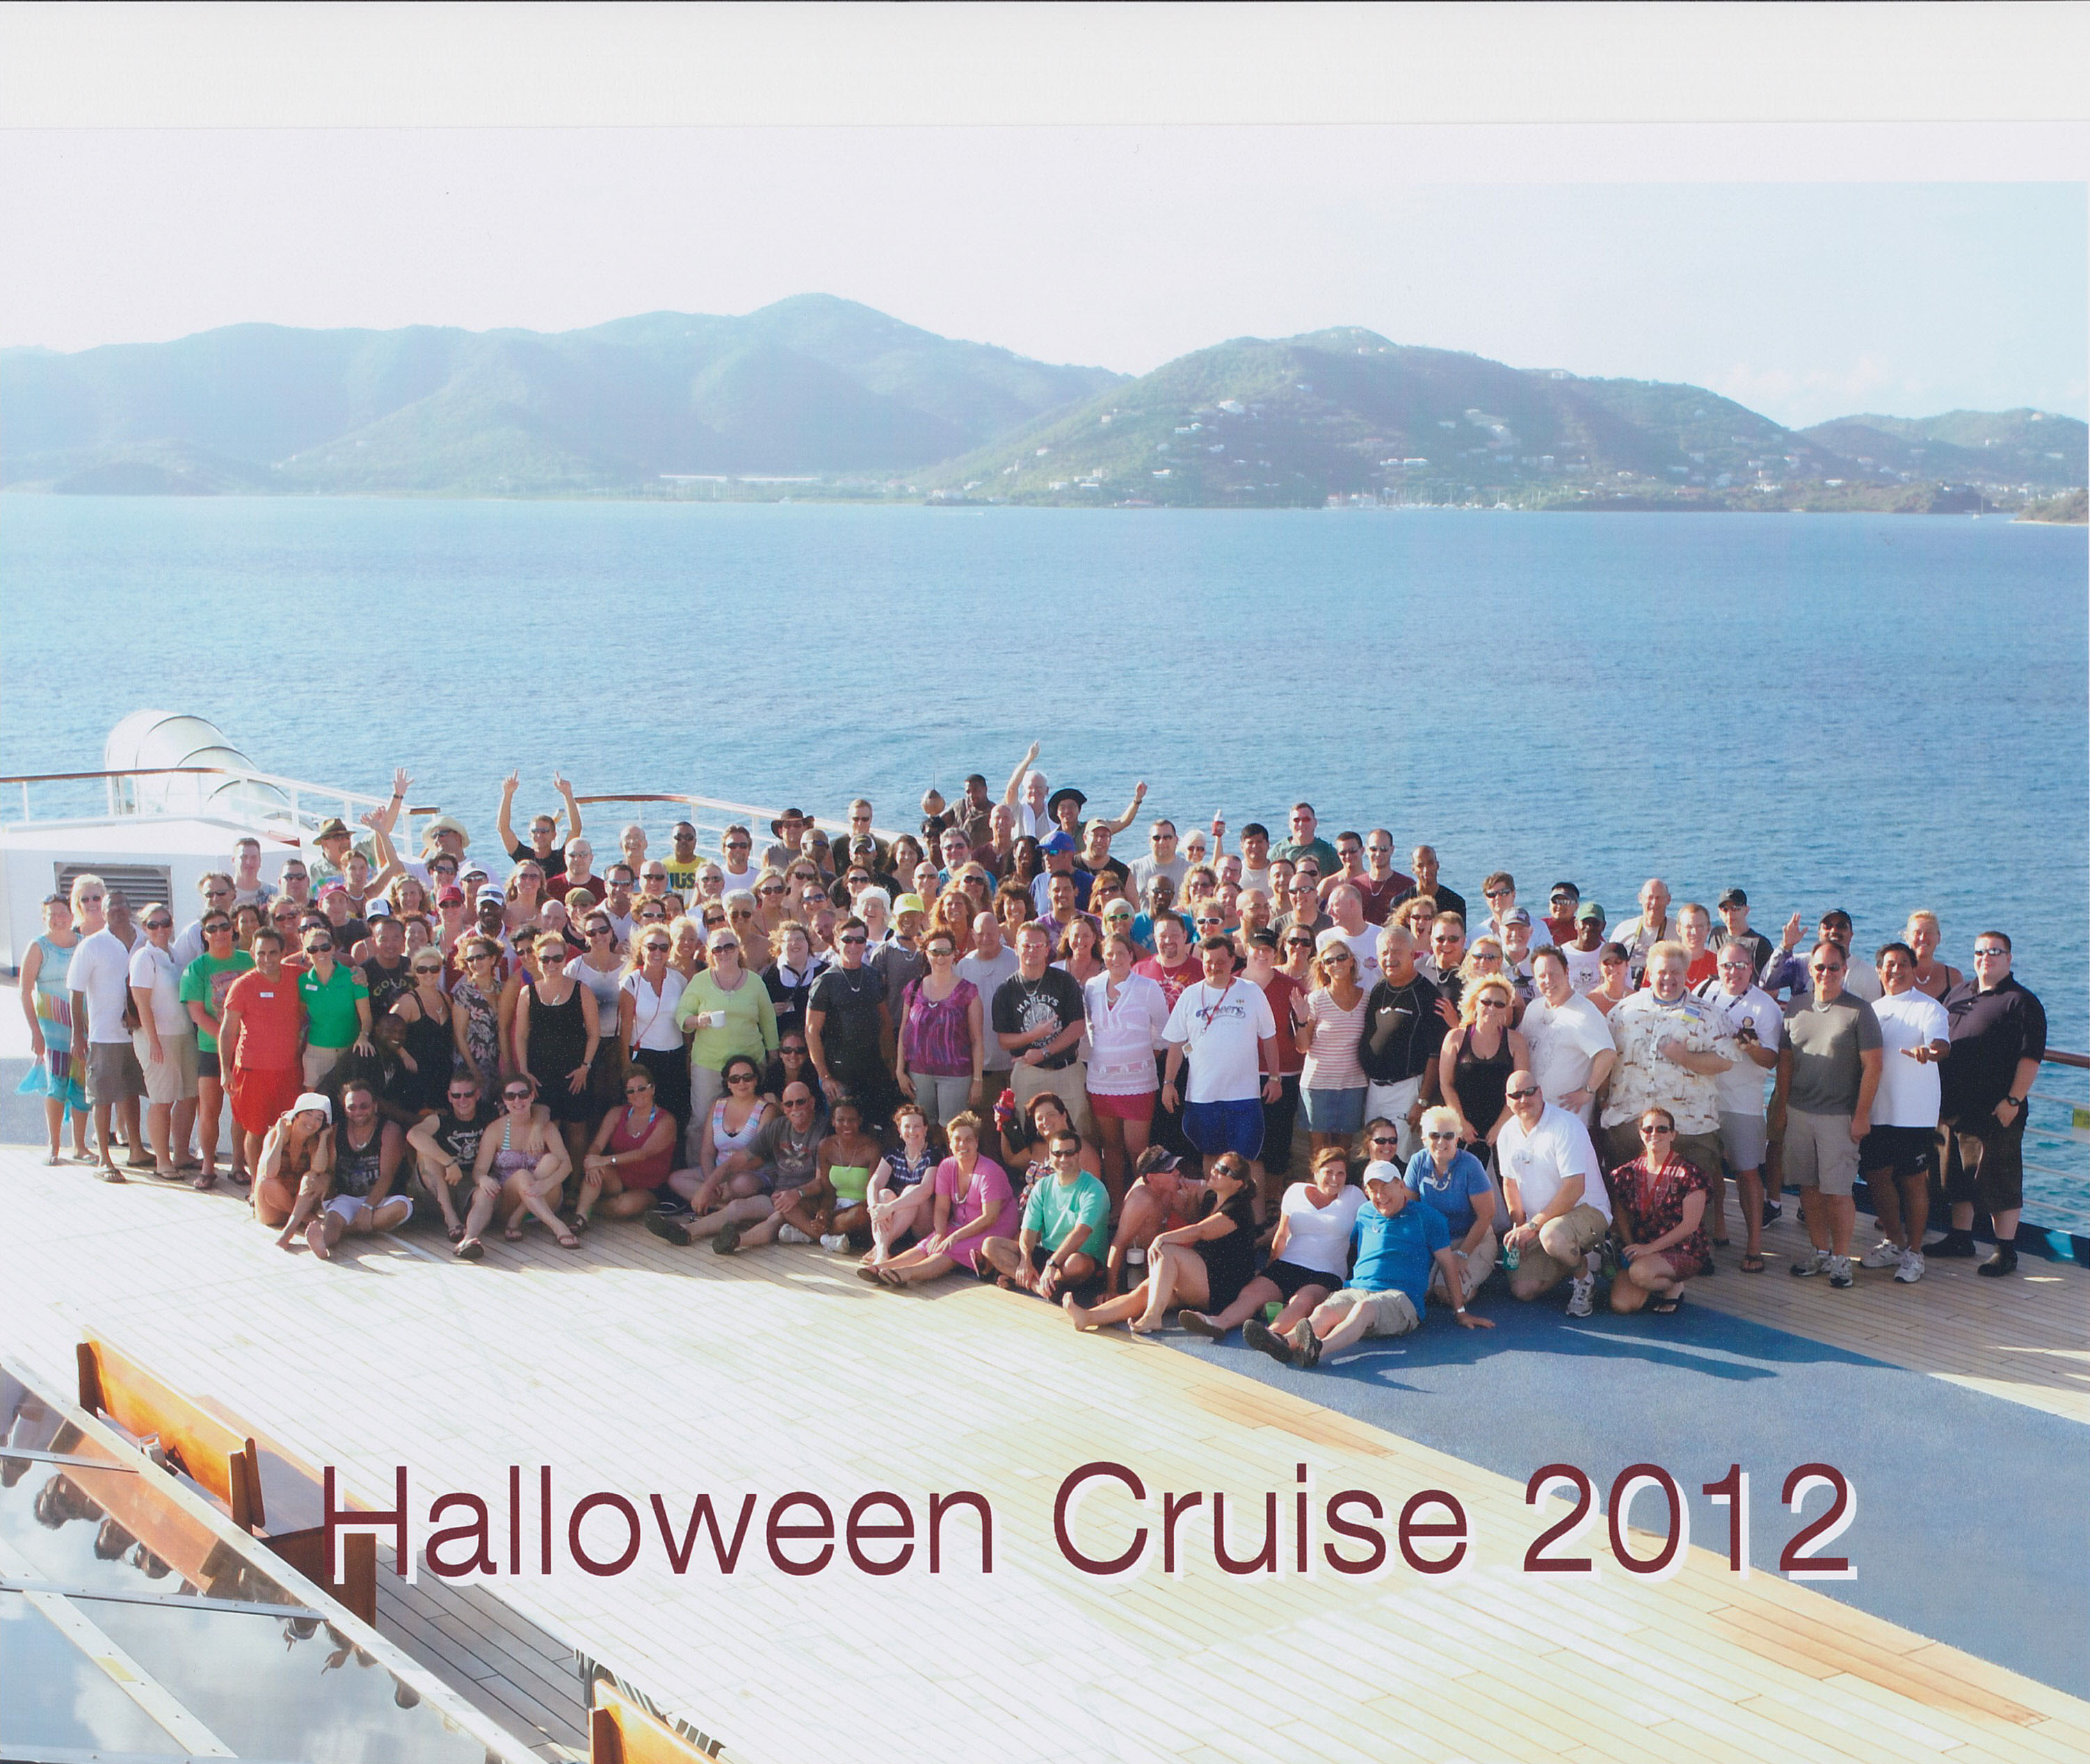 620 Singles Attend SinglesCruise.com's Largest Halloween Bash at Sea